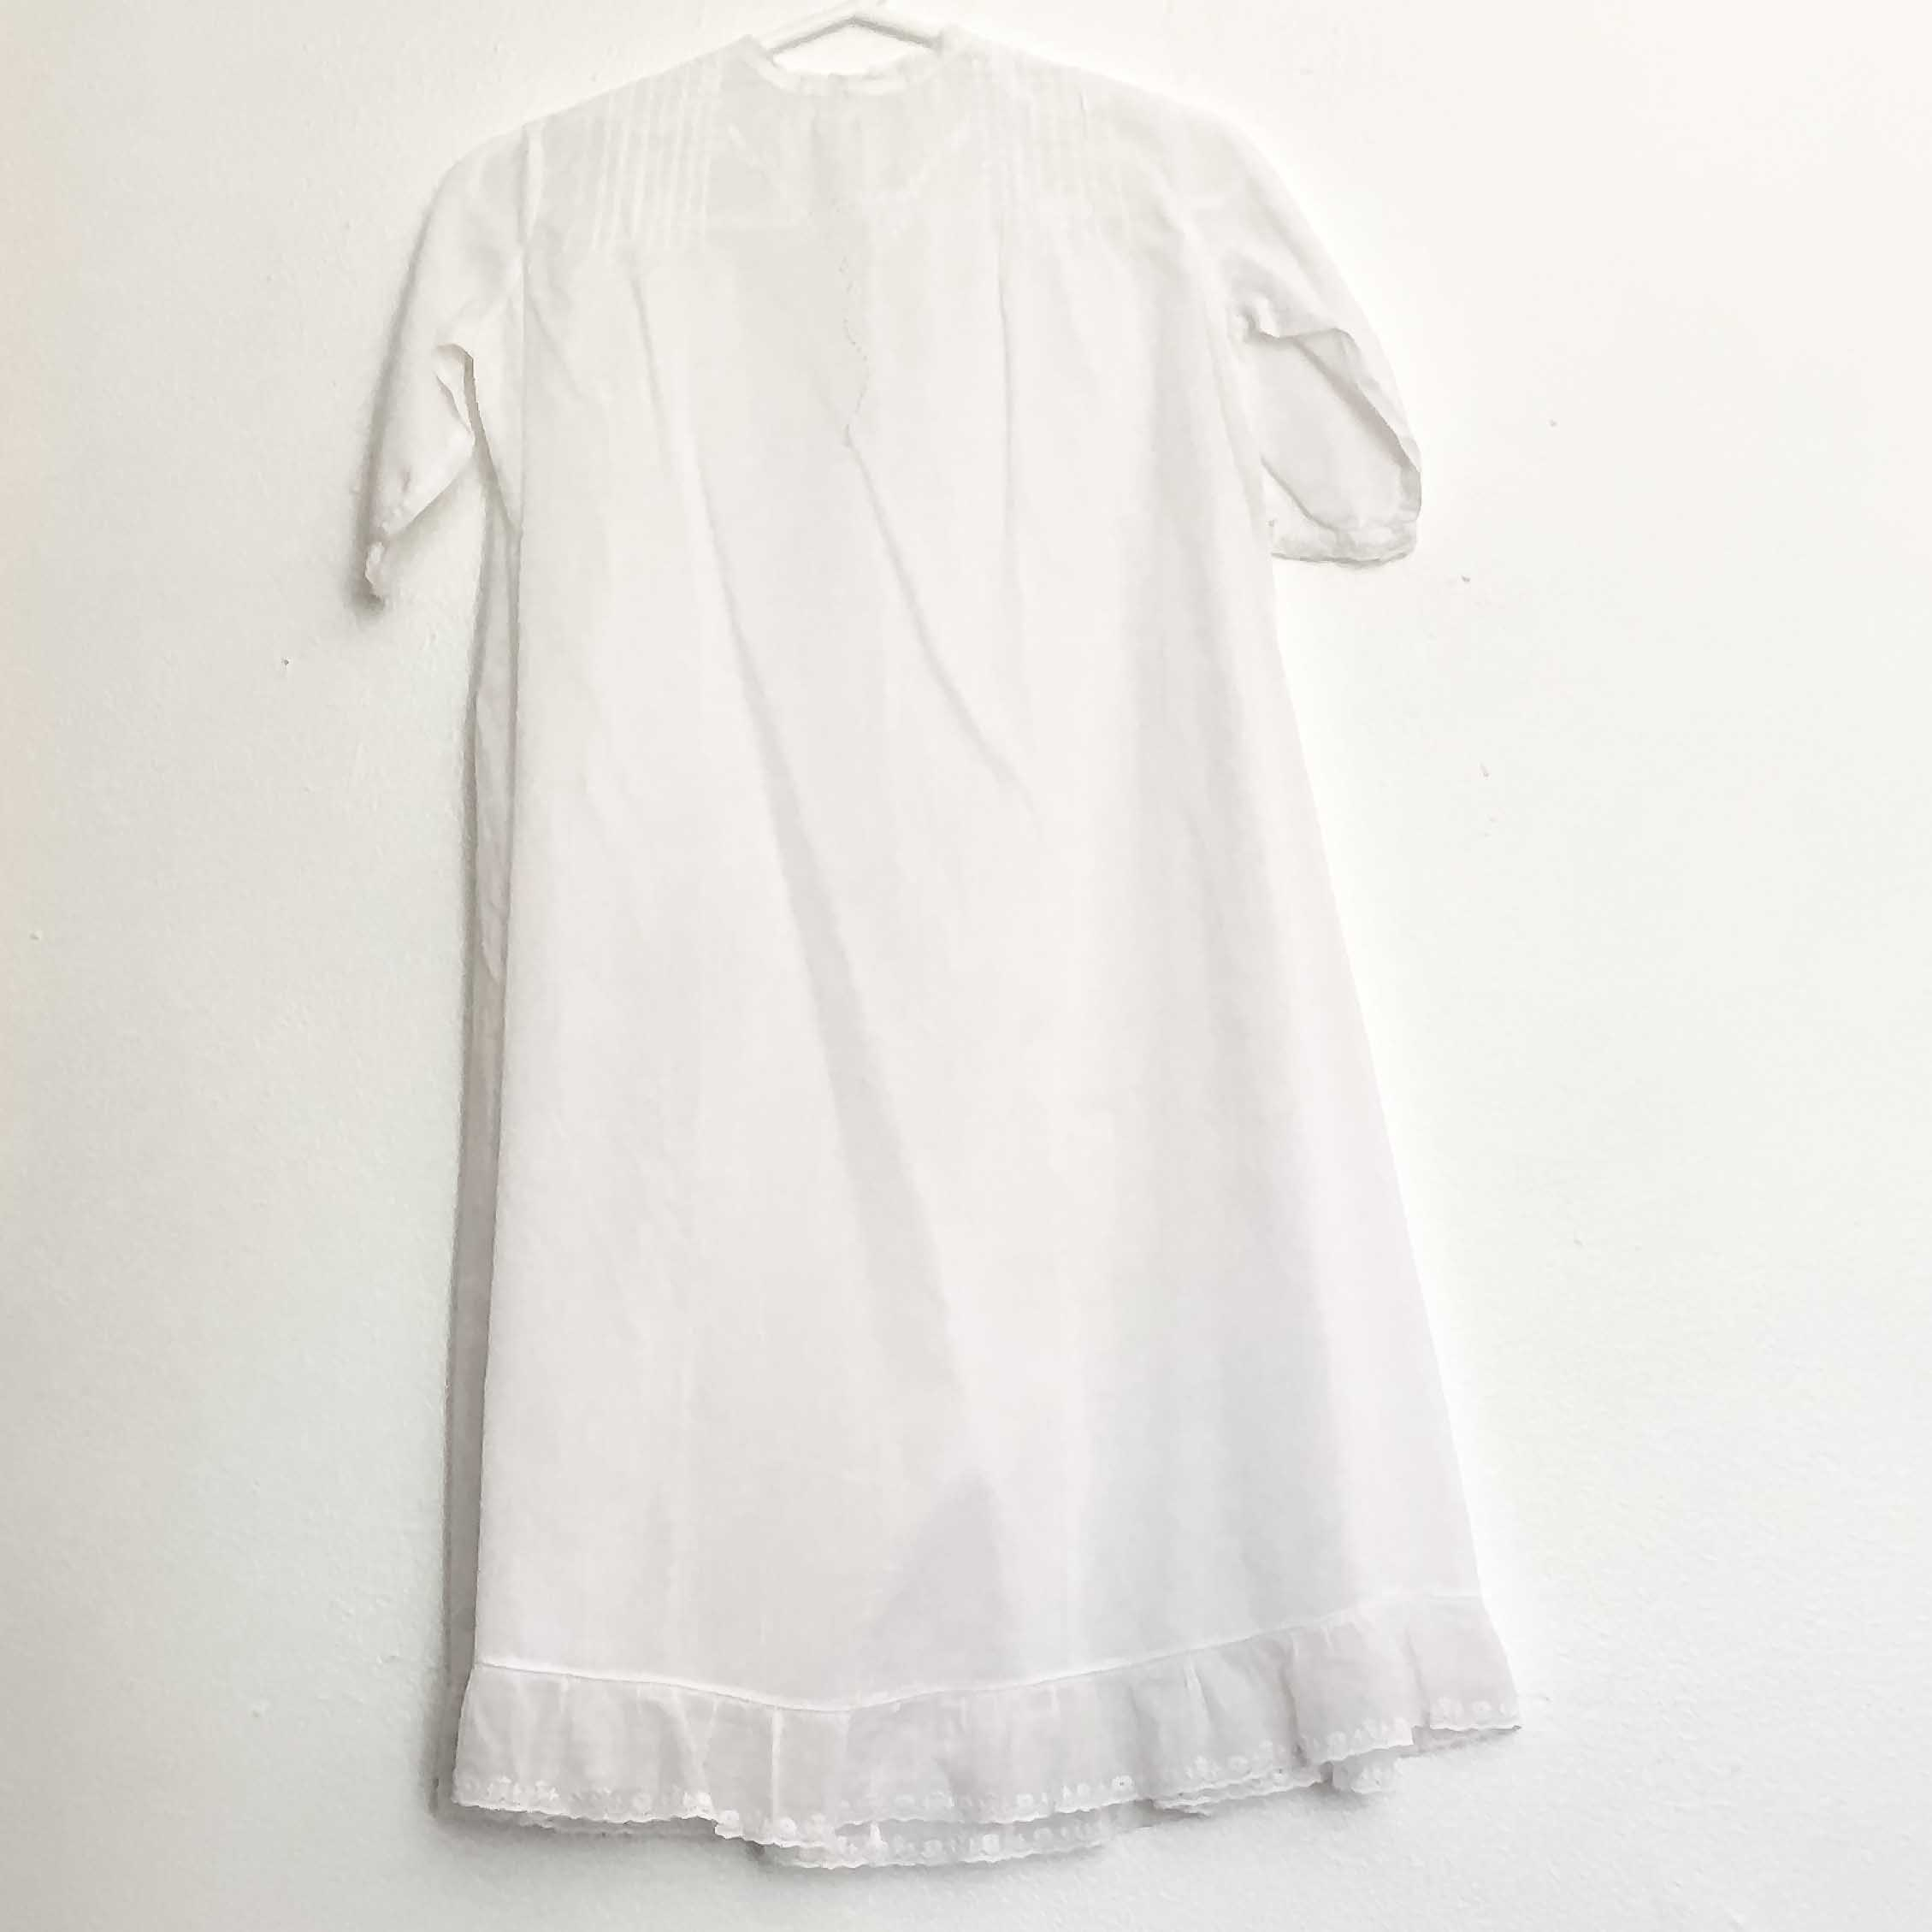 ORPCLOTHES-6.jpg